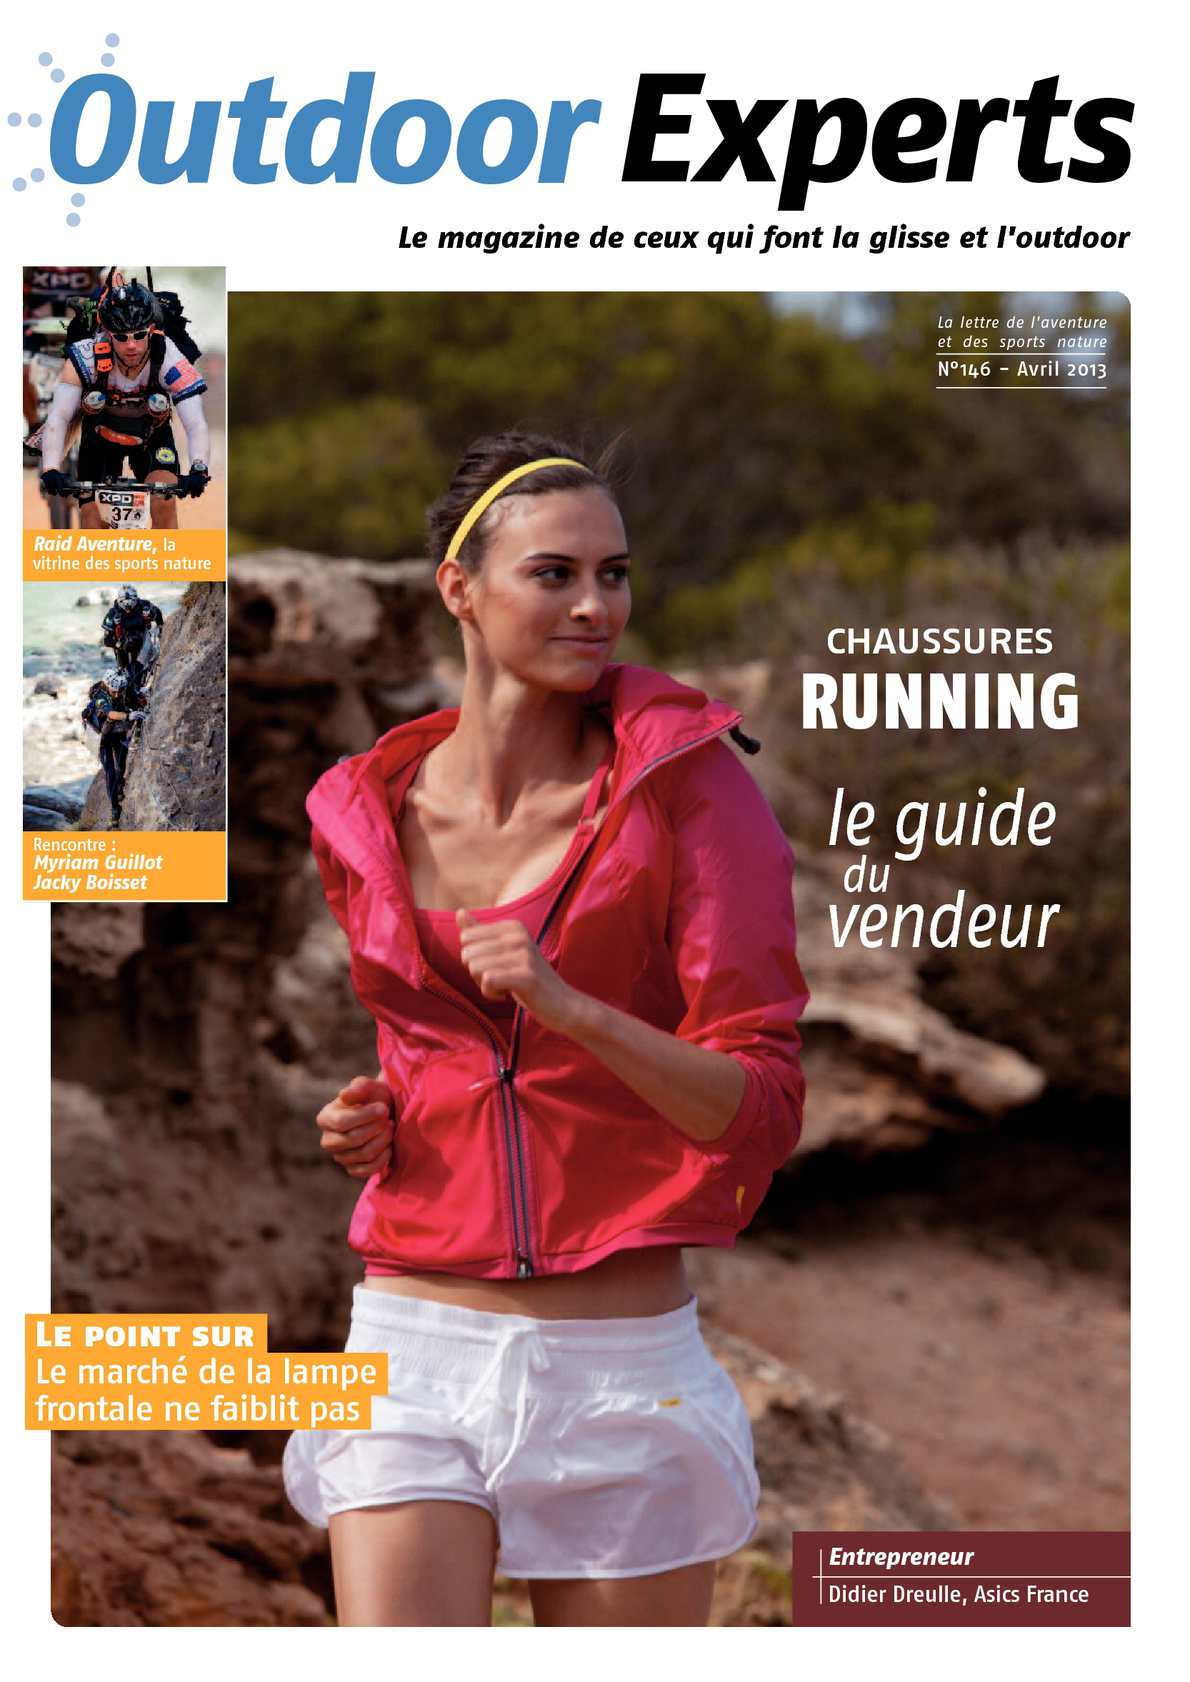 Calaméo - Outdoor Experts magazine n°146 avril 2013 36bd2875549b